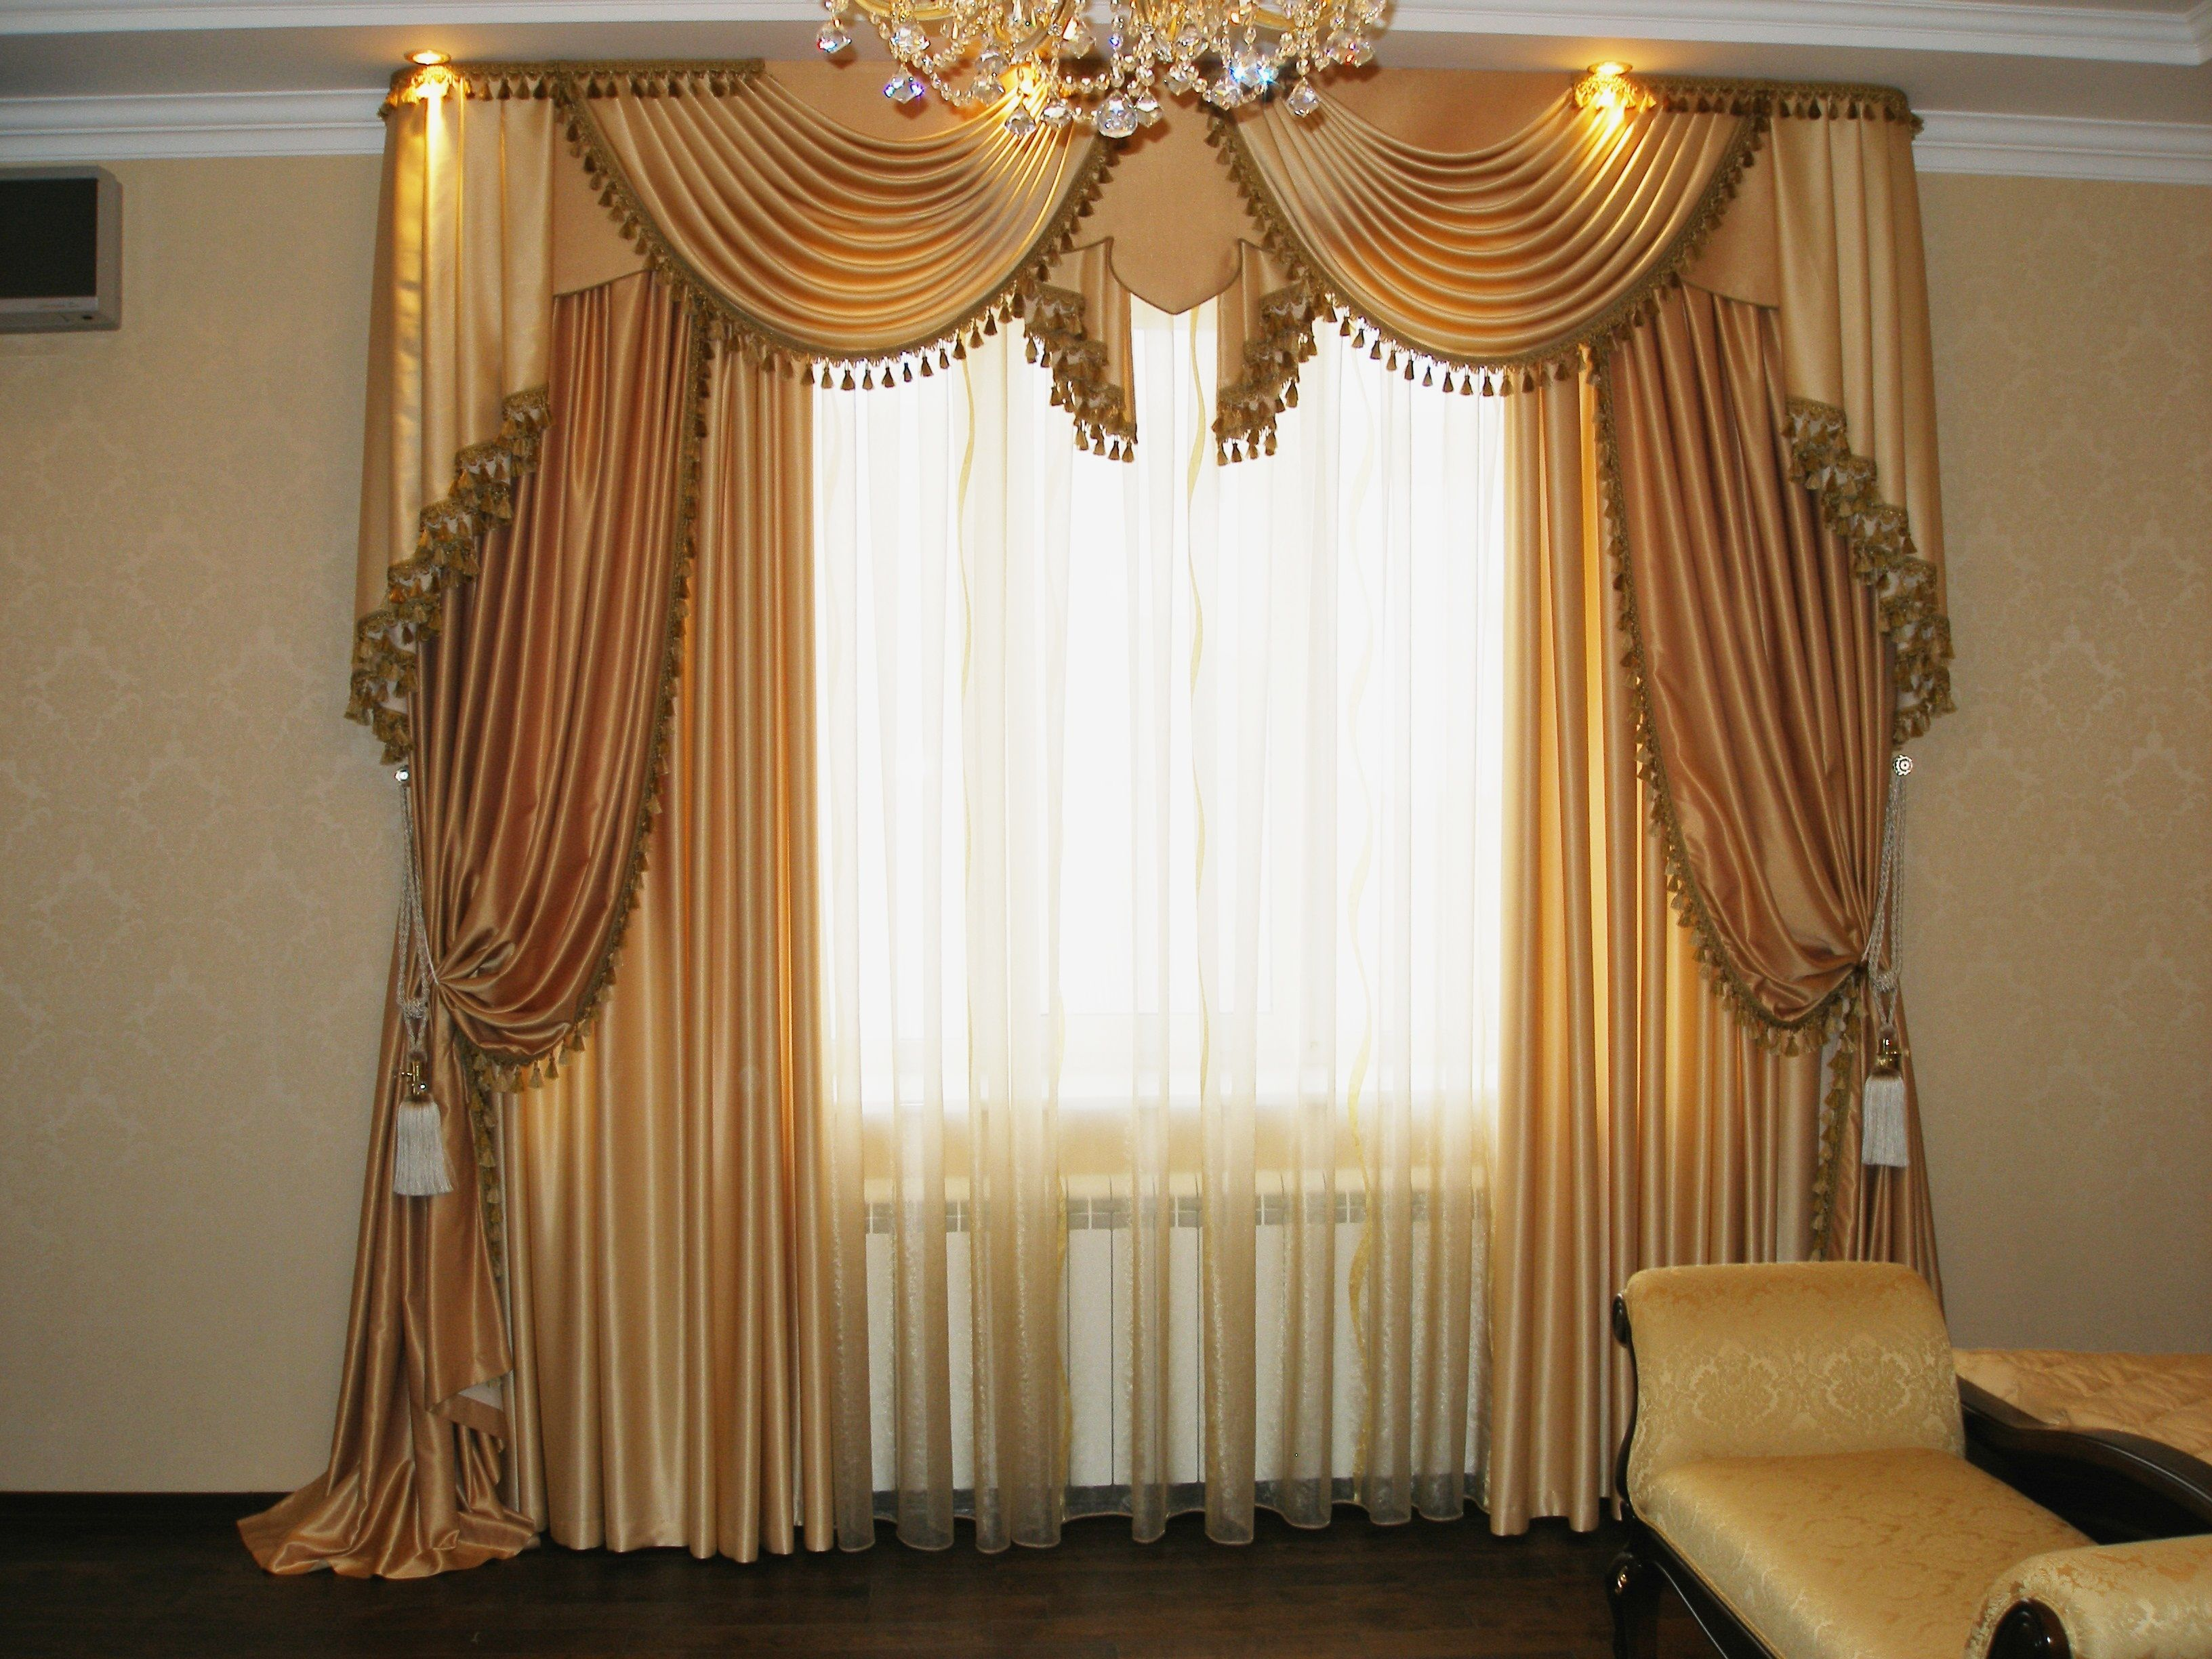 Pin by Akvarell on my work (curtains),Window Treatments ... on Draping Curtains Ideas  id=49969